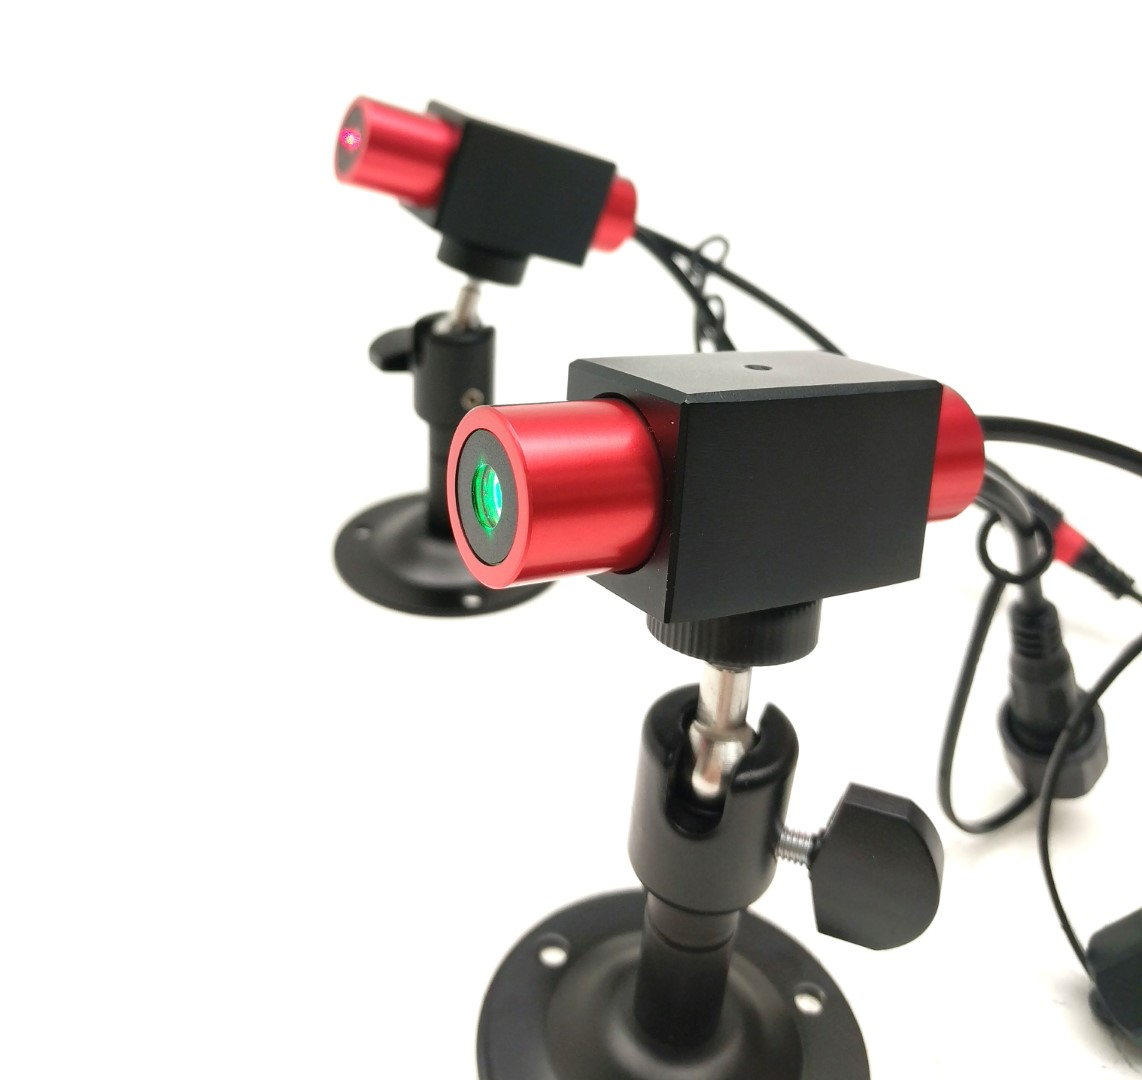 40 mW 635 nm Red Premium Structured Cross laser, 62° fan angle, adjustable focus, TTL+, Sealed IP67